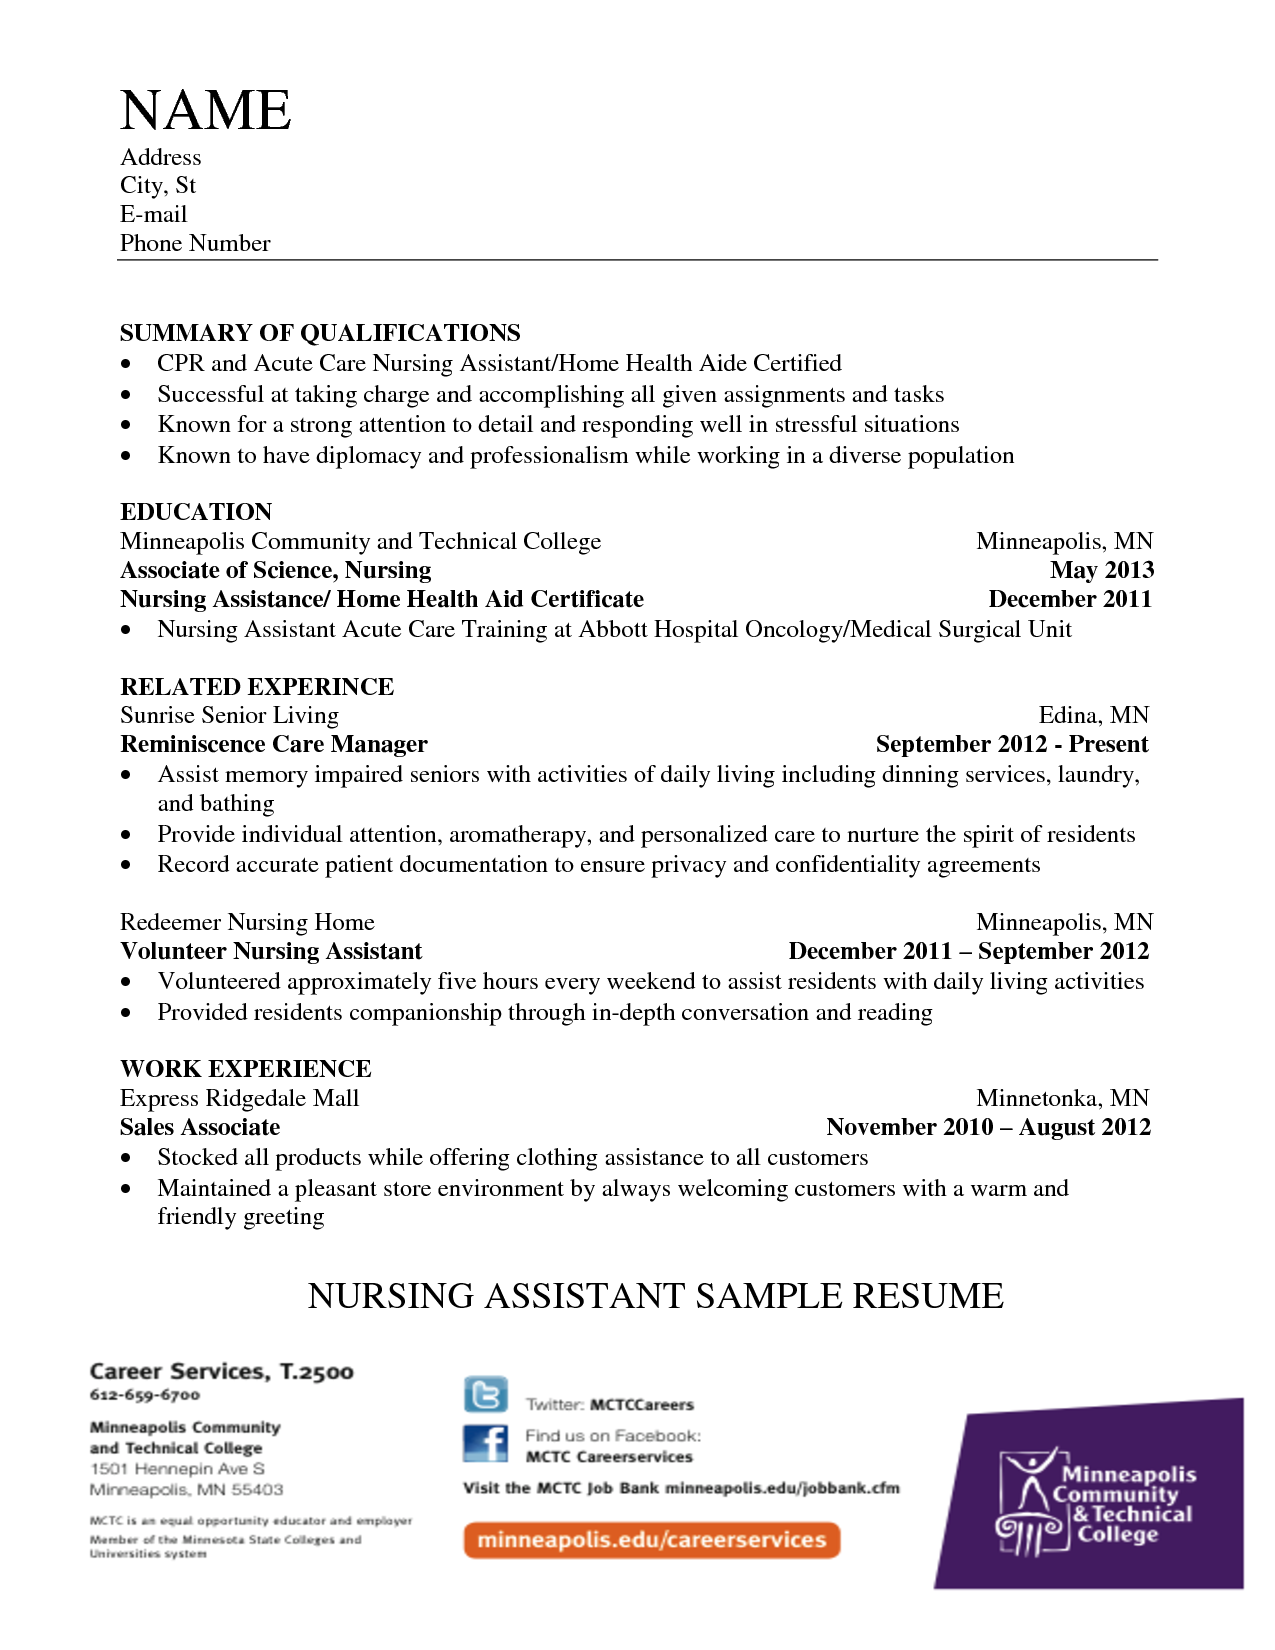 Home Health Nursing Assistant Resume Sample  Home Health Aide Resume Sample